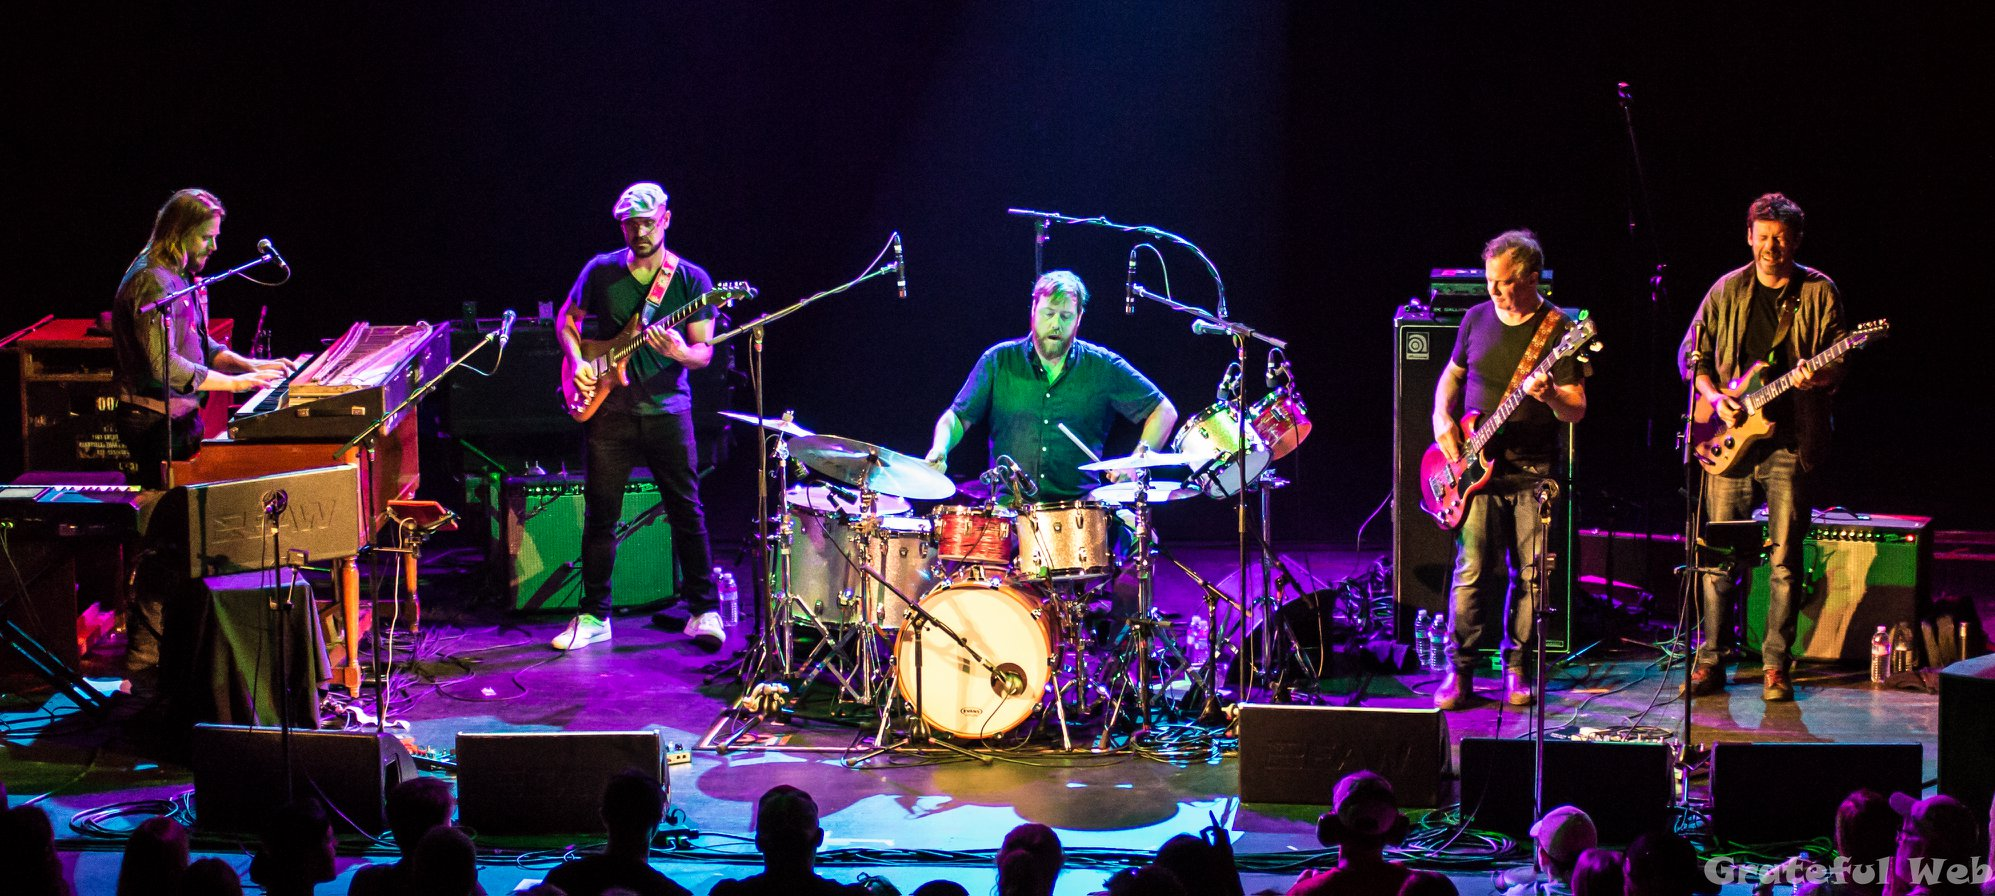 Joe Russo's Almost Dead | McDonald Theater | 8/11/18